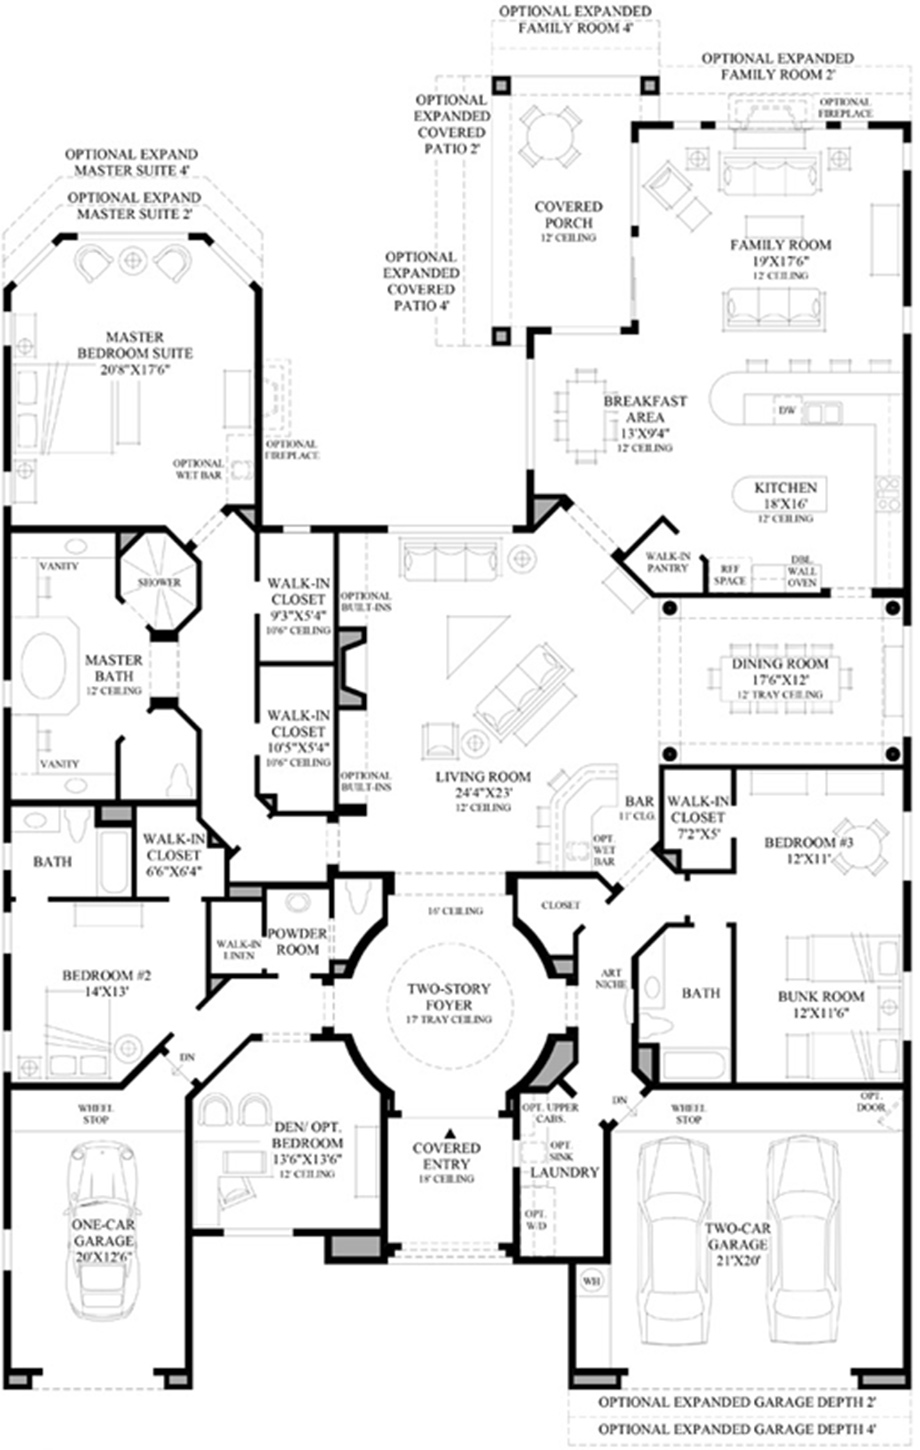 Image Result For How To Add My Home In Google Map